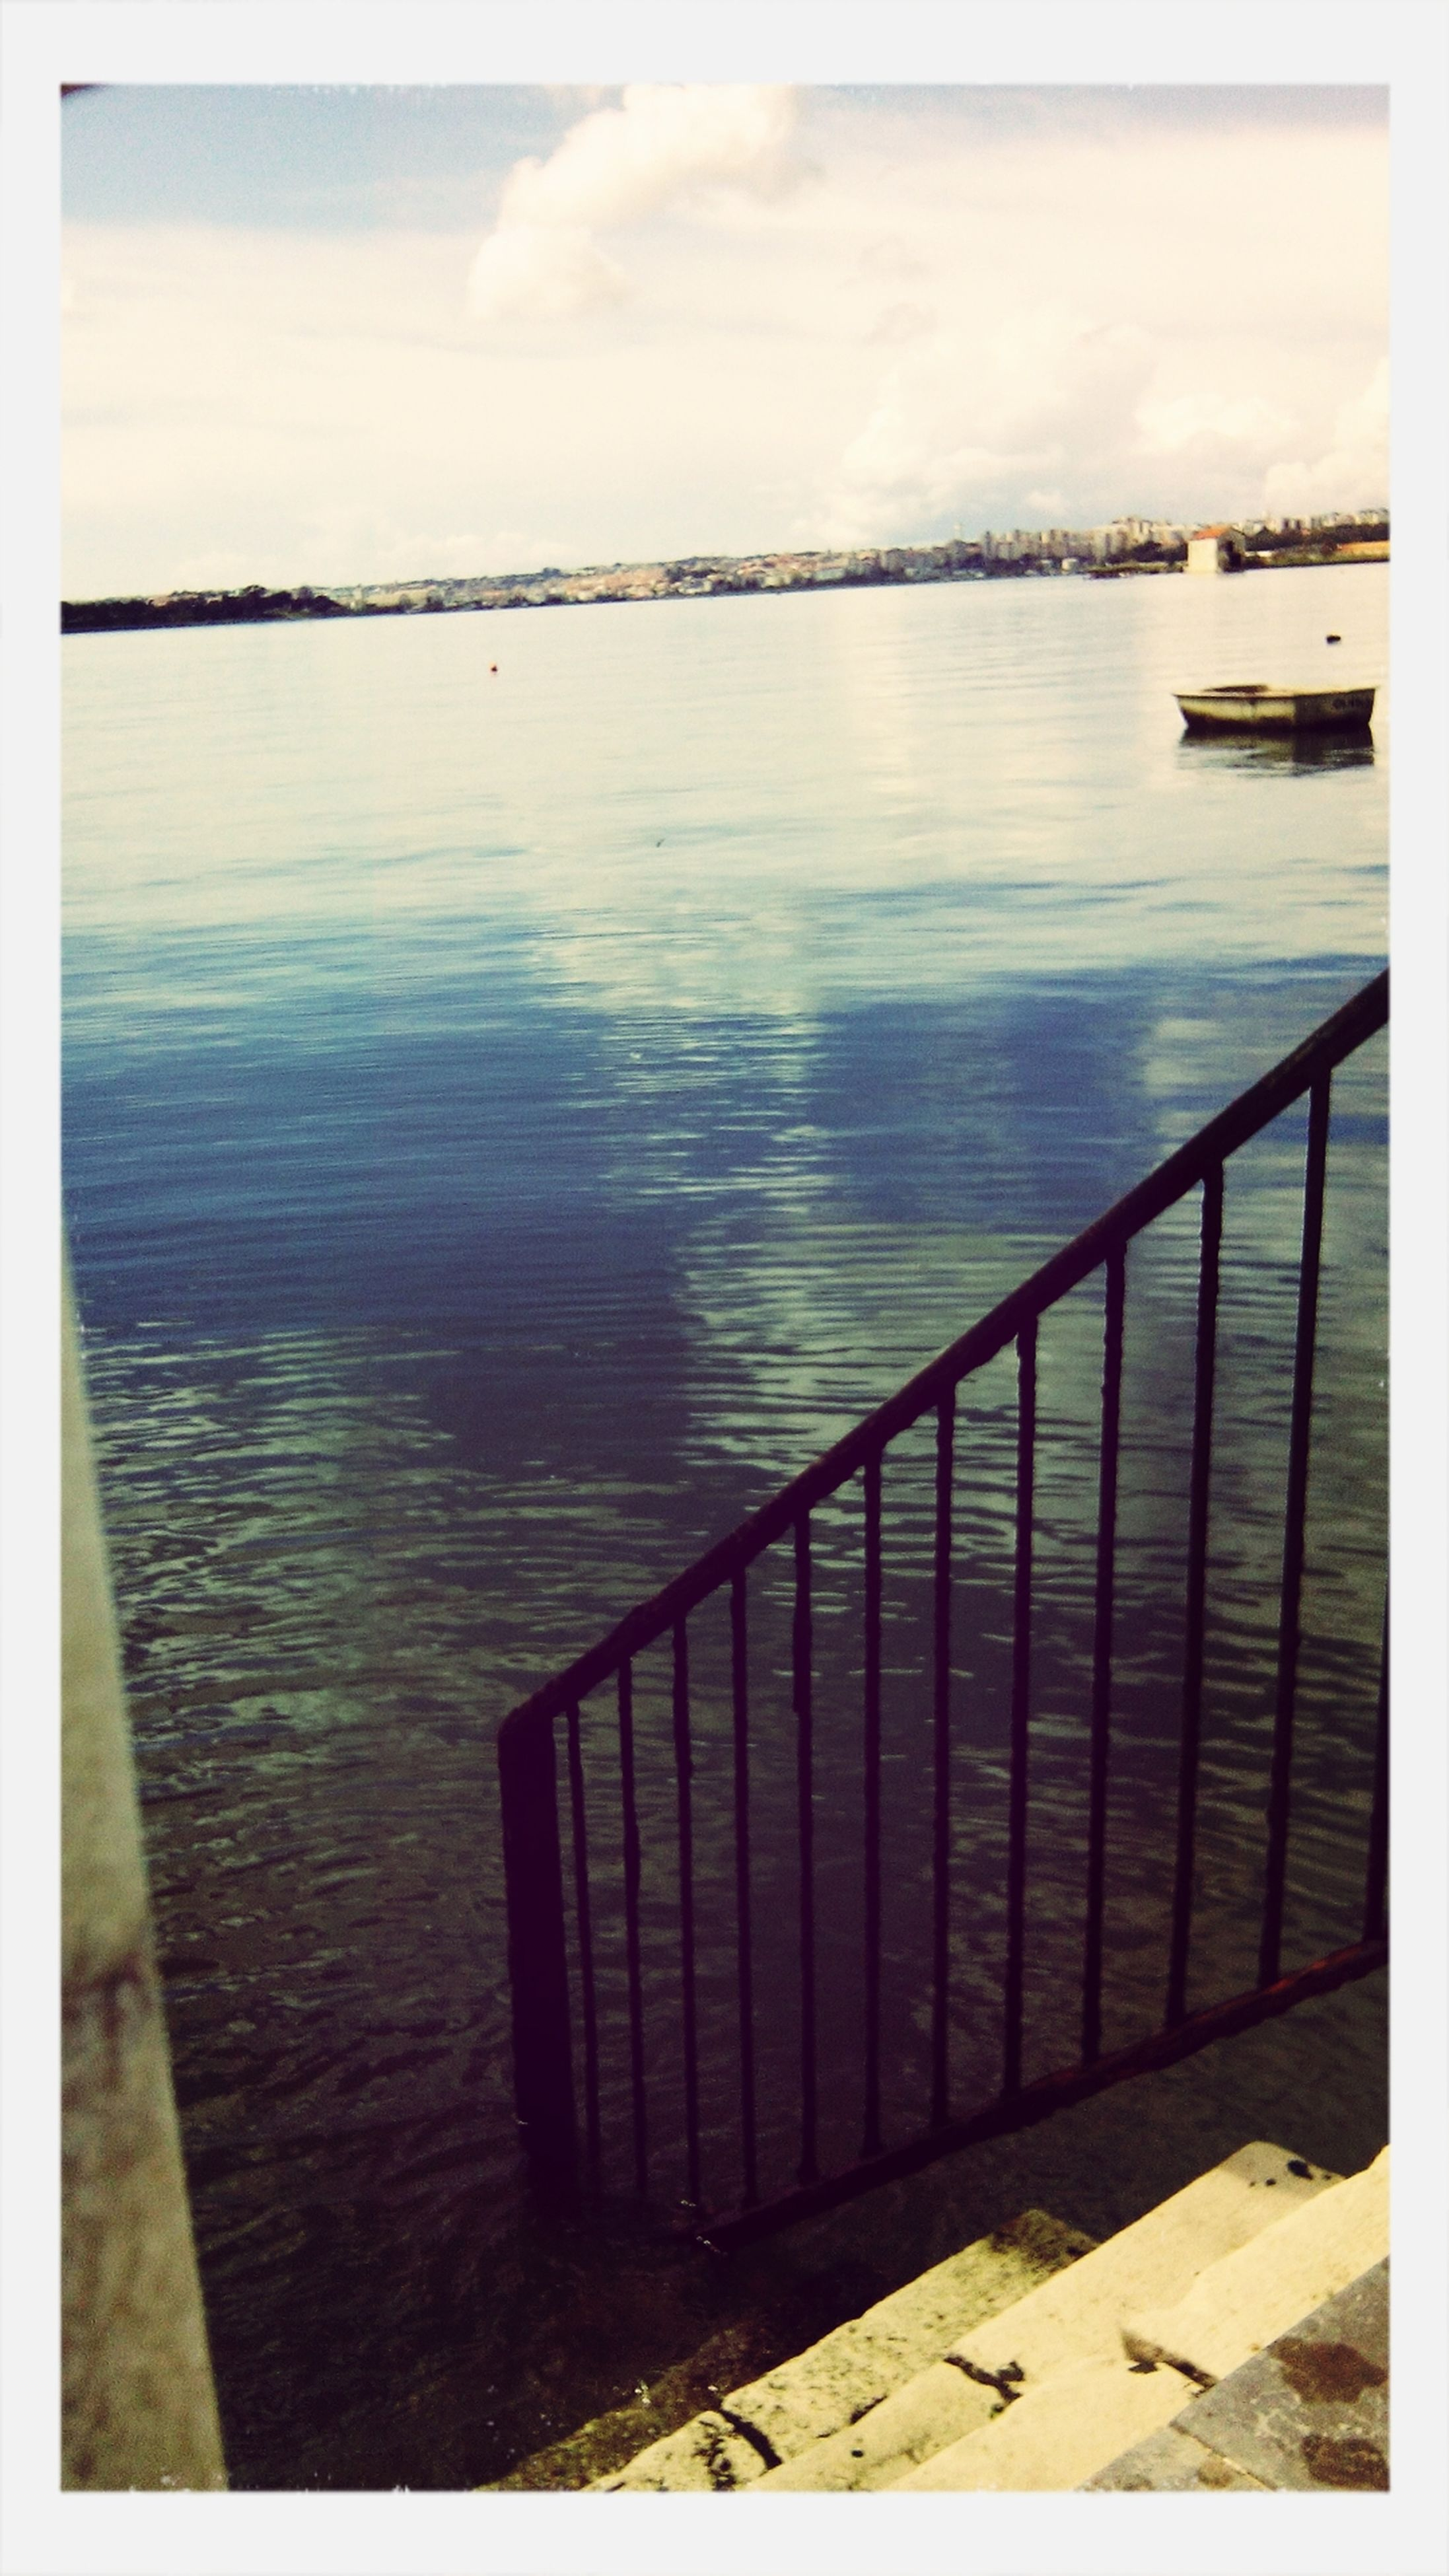 water, transfer print, auto post production filter, lake, sky, reflection, tranquility, tranquil scene, river, railing, sea, scenics, rippled, nature, pier, beauty in nature, cloud - sky, no people, day, outdoors